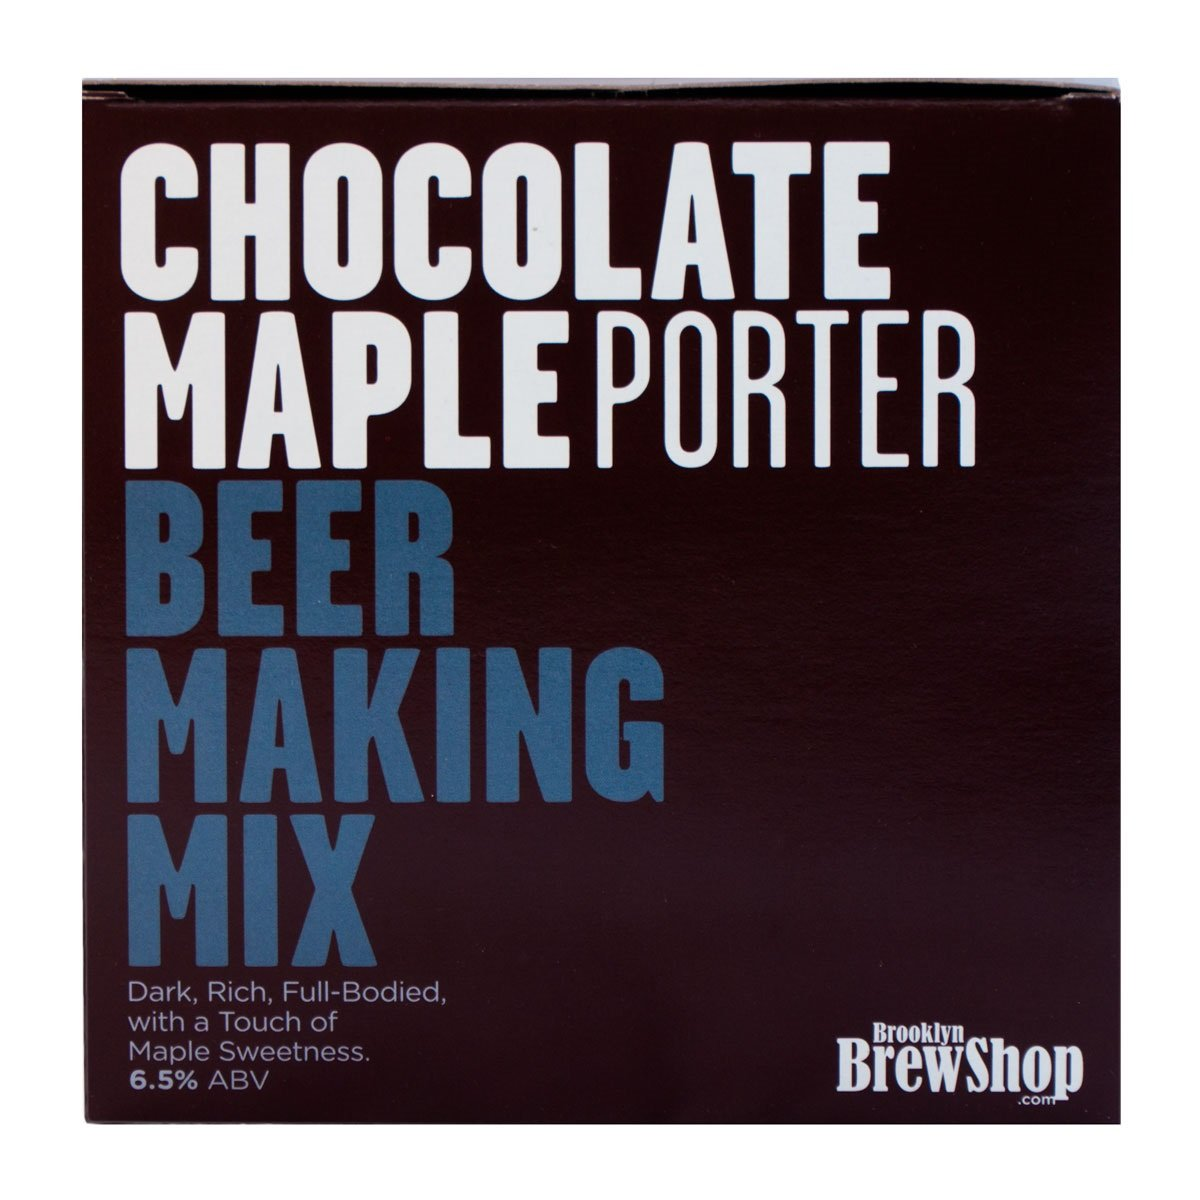 Brooklyn Brew Shop Chocolate Maple Porter 1 Gallon All-Grain Beer Making Mix Including Hops and Yeast - Perfect for Brewing Craft Beer on Your Stovetop at Home